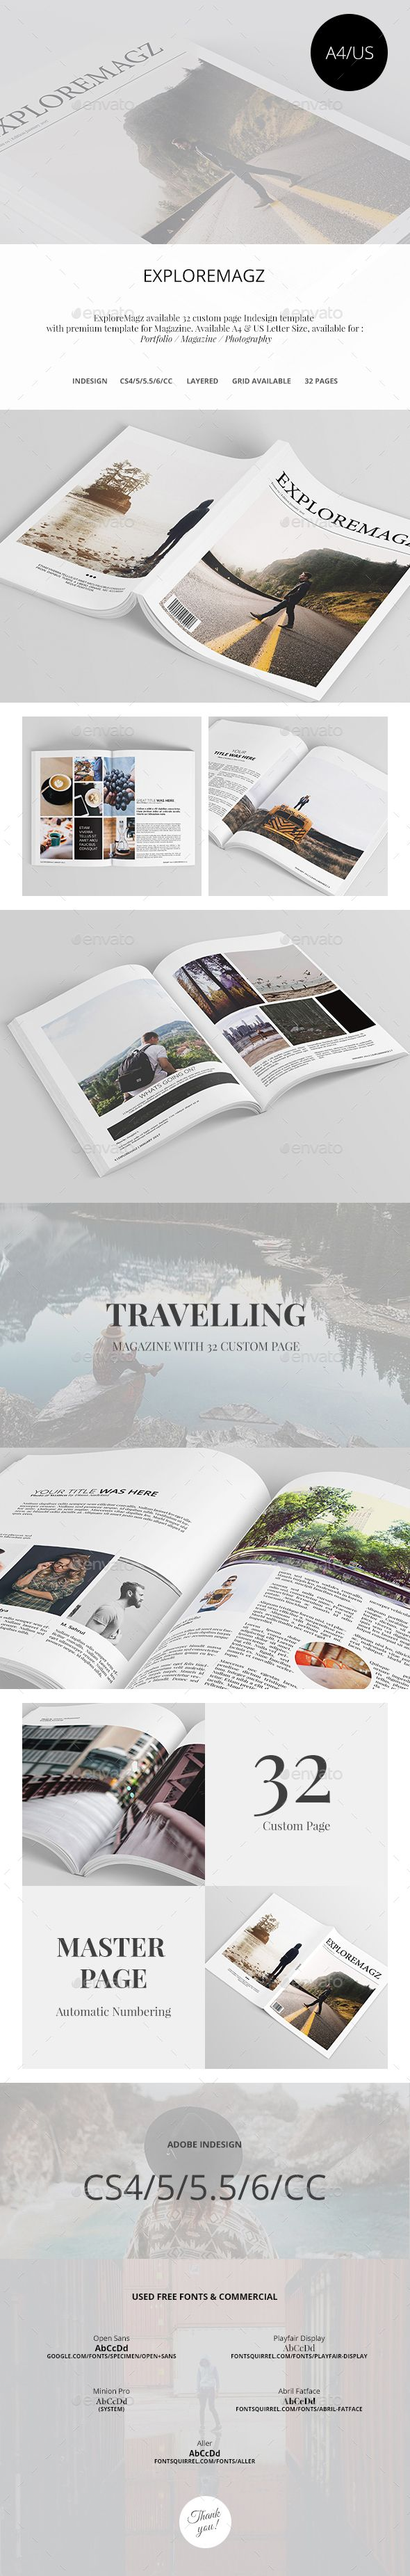 Exploremagz Magazine Template InDesign INDD #design Download: http://graphicriver.net/item/exploremagz-magazine/14404230?ref=ksioks